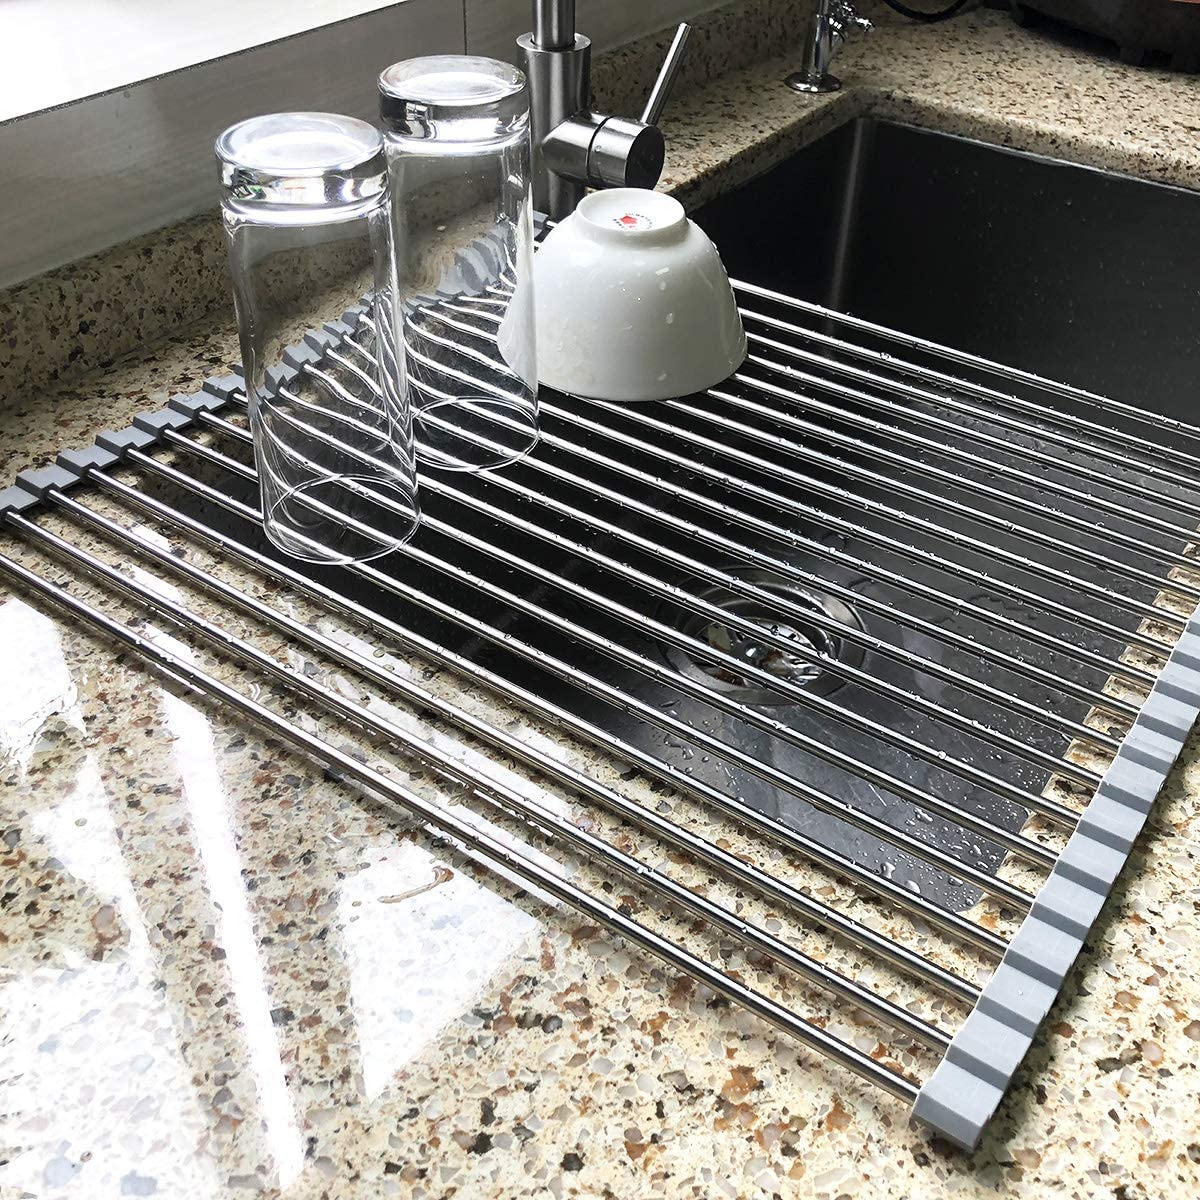 BUY 2 FREE SHIPPING - Roll Up Sink Drying Rack